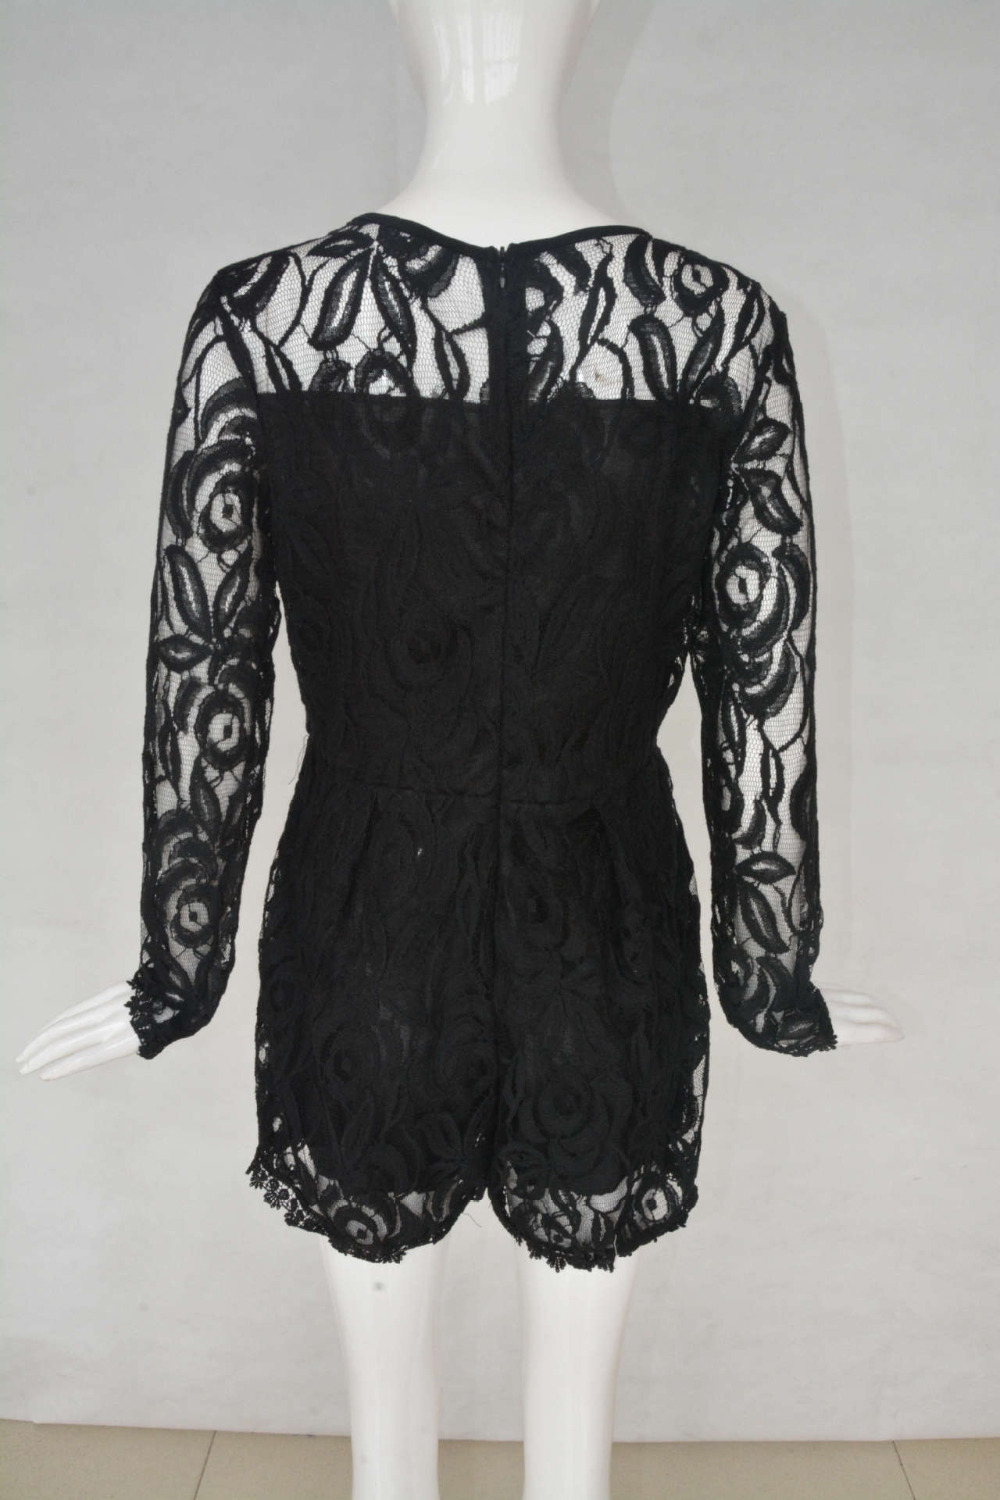 Solid Color Hollow Out Long Sleeve Lace Rompers Plus Size Jumpsuit XXL XXXL XXXXL Clubwear Sexy Short Playsuit White/Black/Red 3